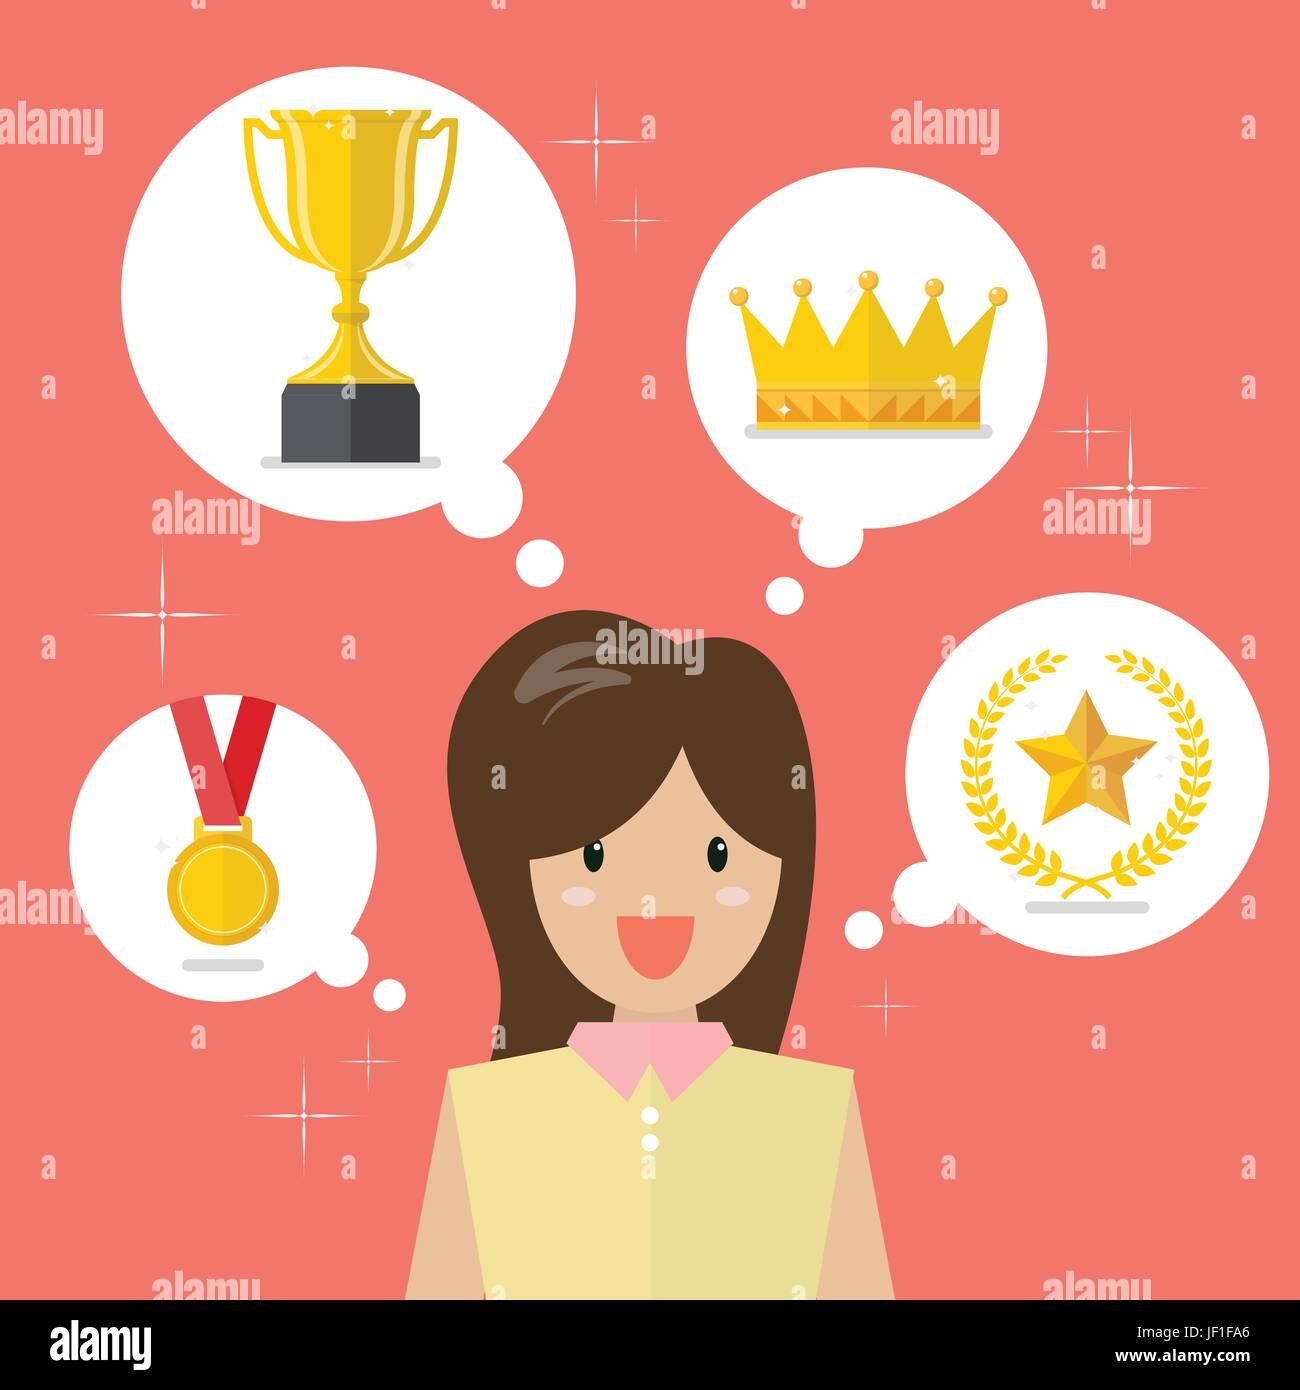 Woman think about achievements. Vector illustration - Stock Image